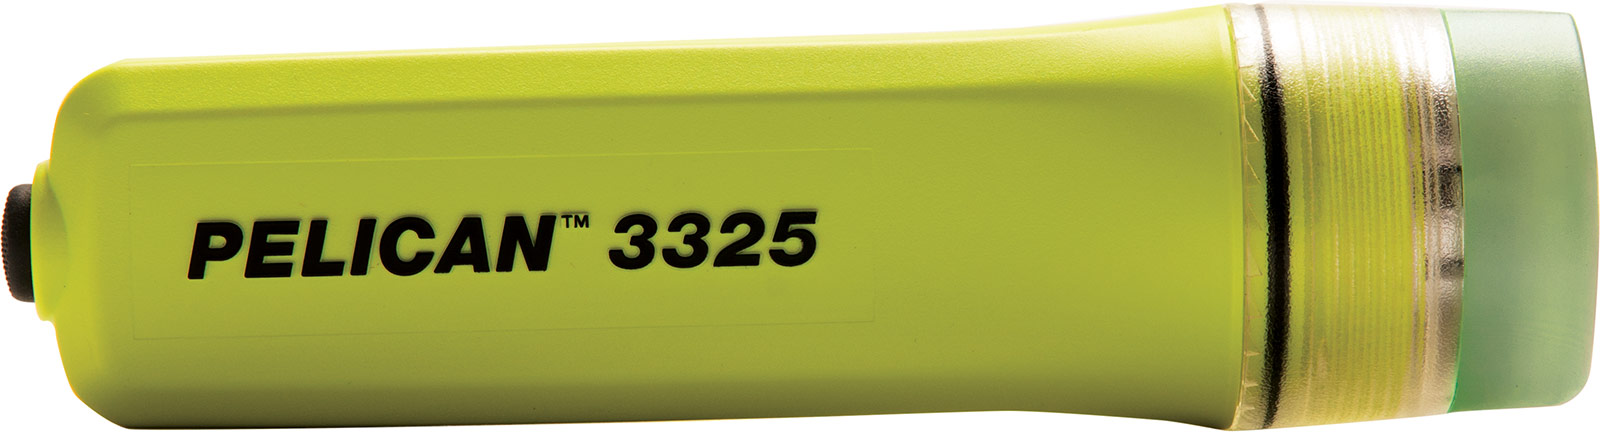 pelican 3325 safety certified flashlight